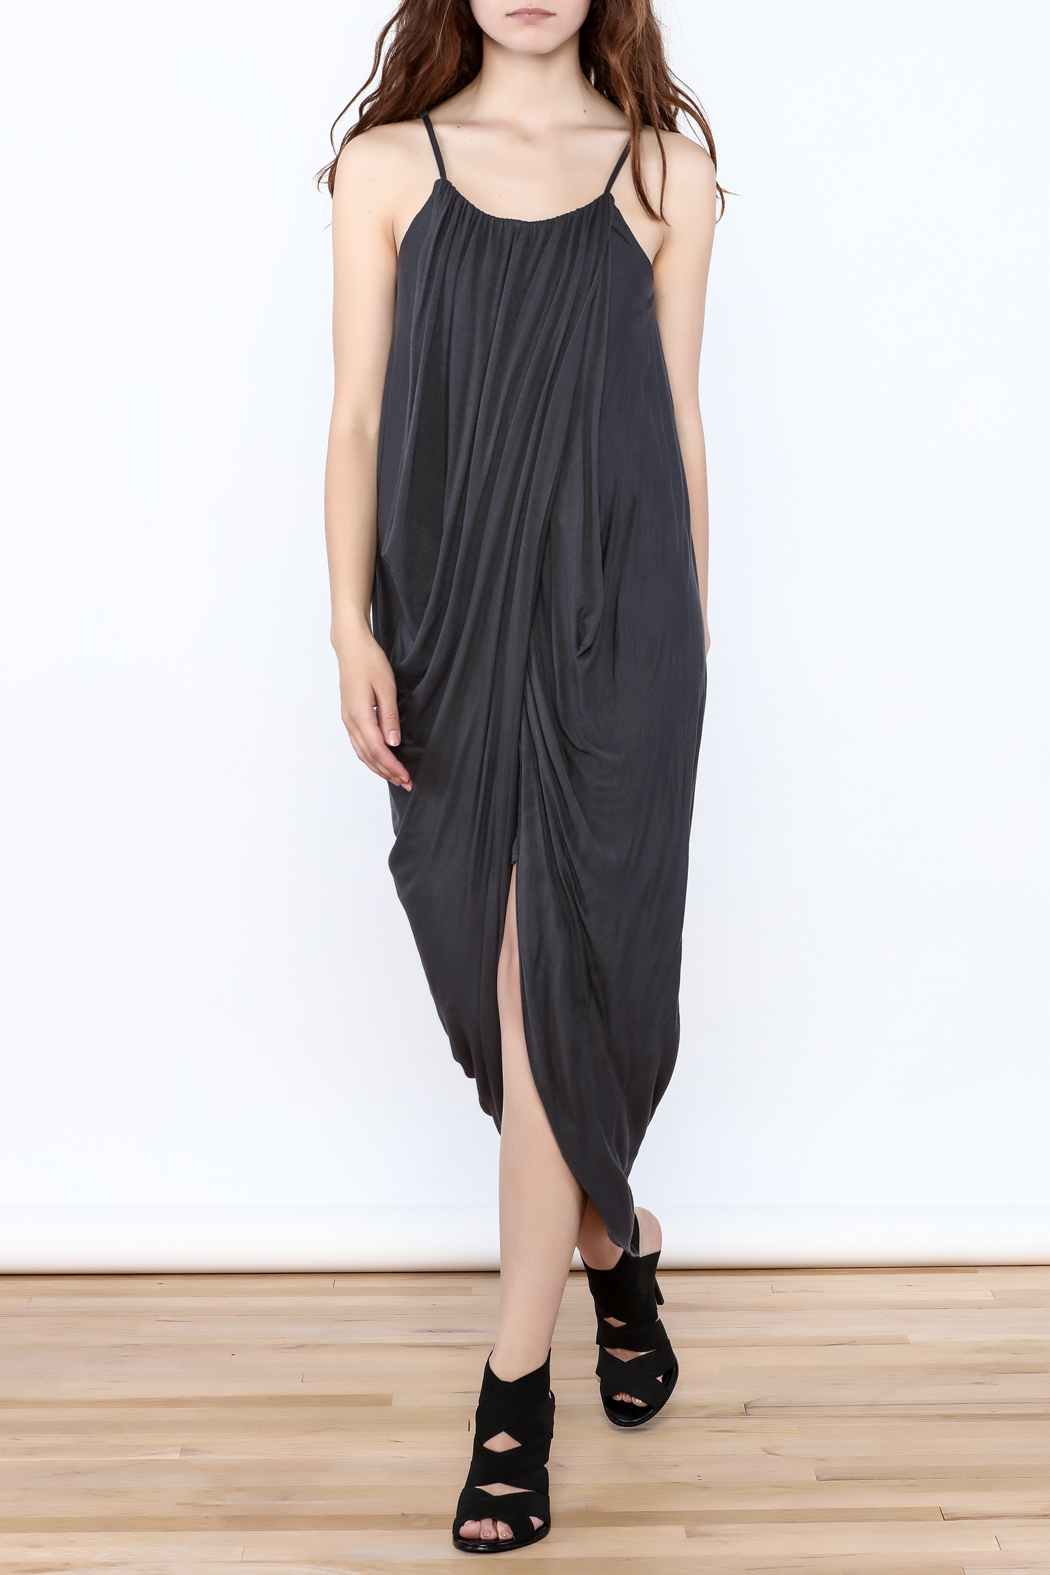 HYFVE Charcoal Drapey Sleeveless Dress - Main Image